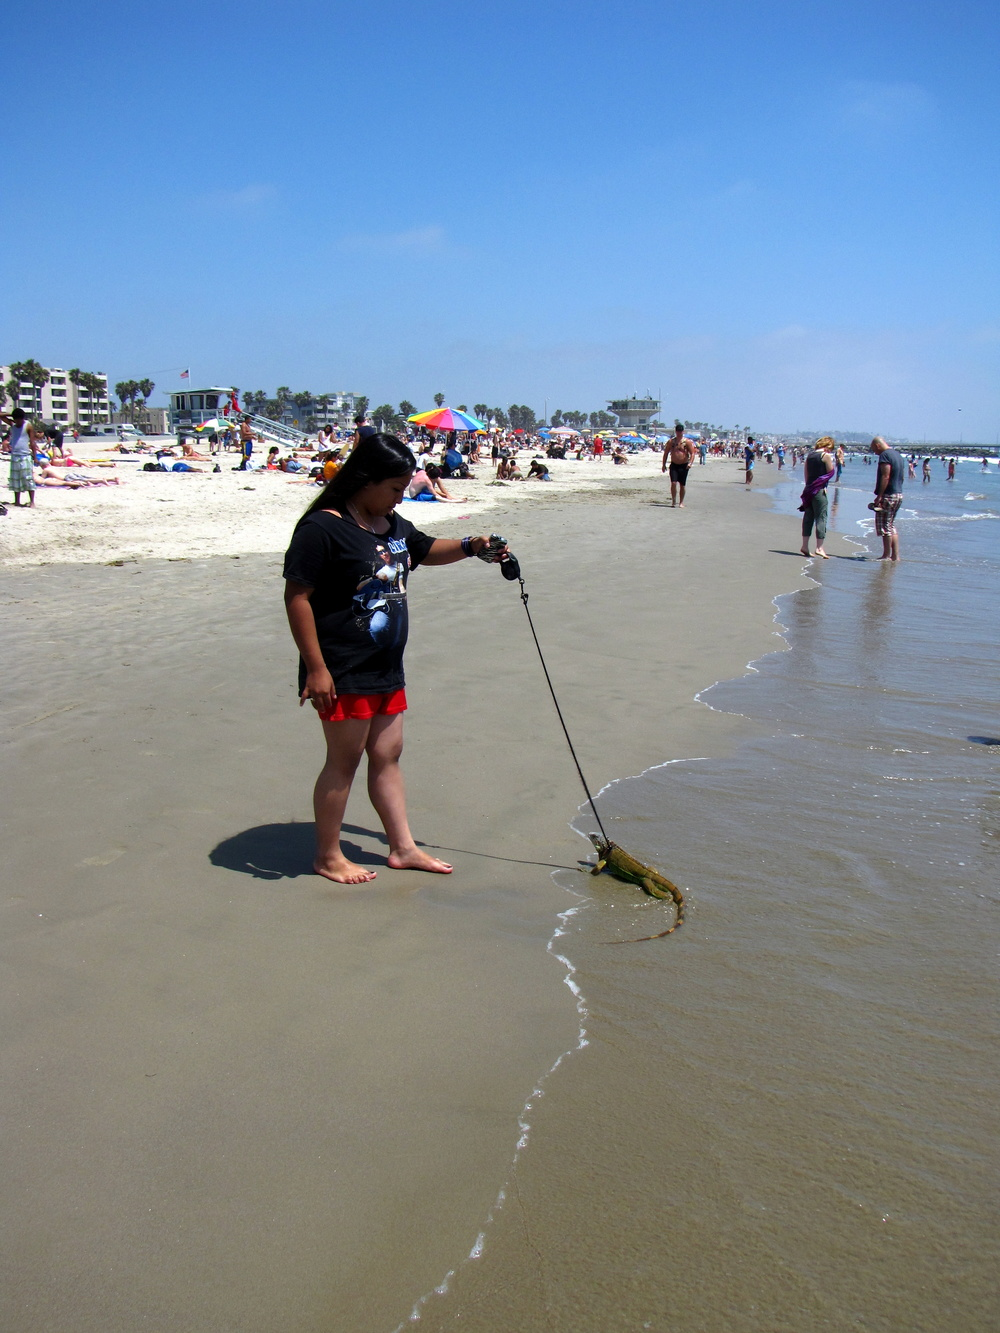 A woman walsk her iguana on Venice Beach. ( Photo by Bill Lascher )